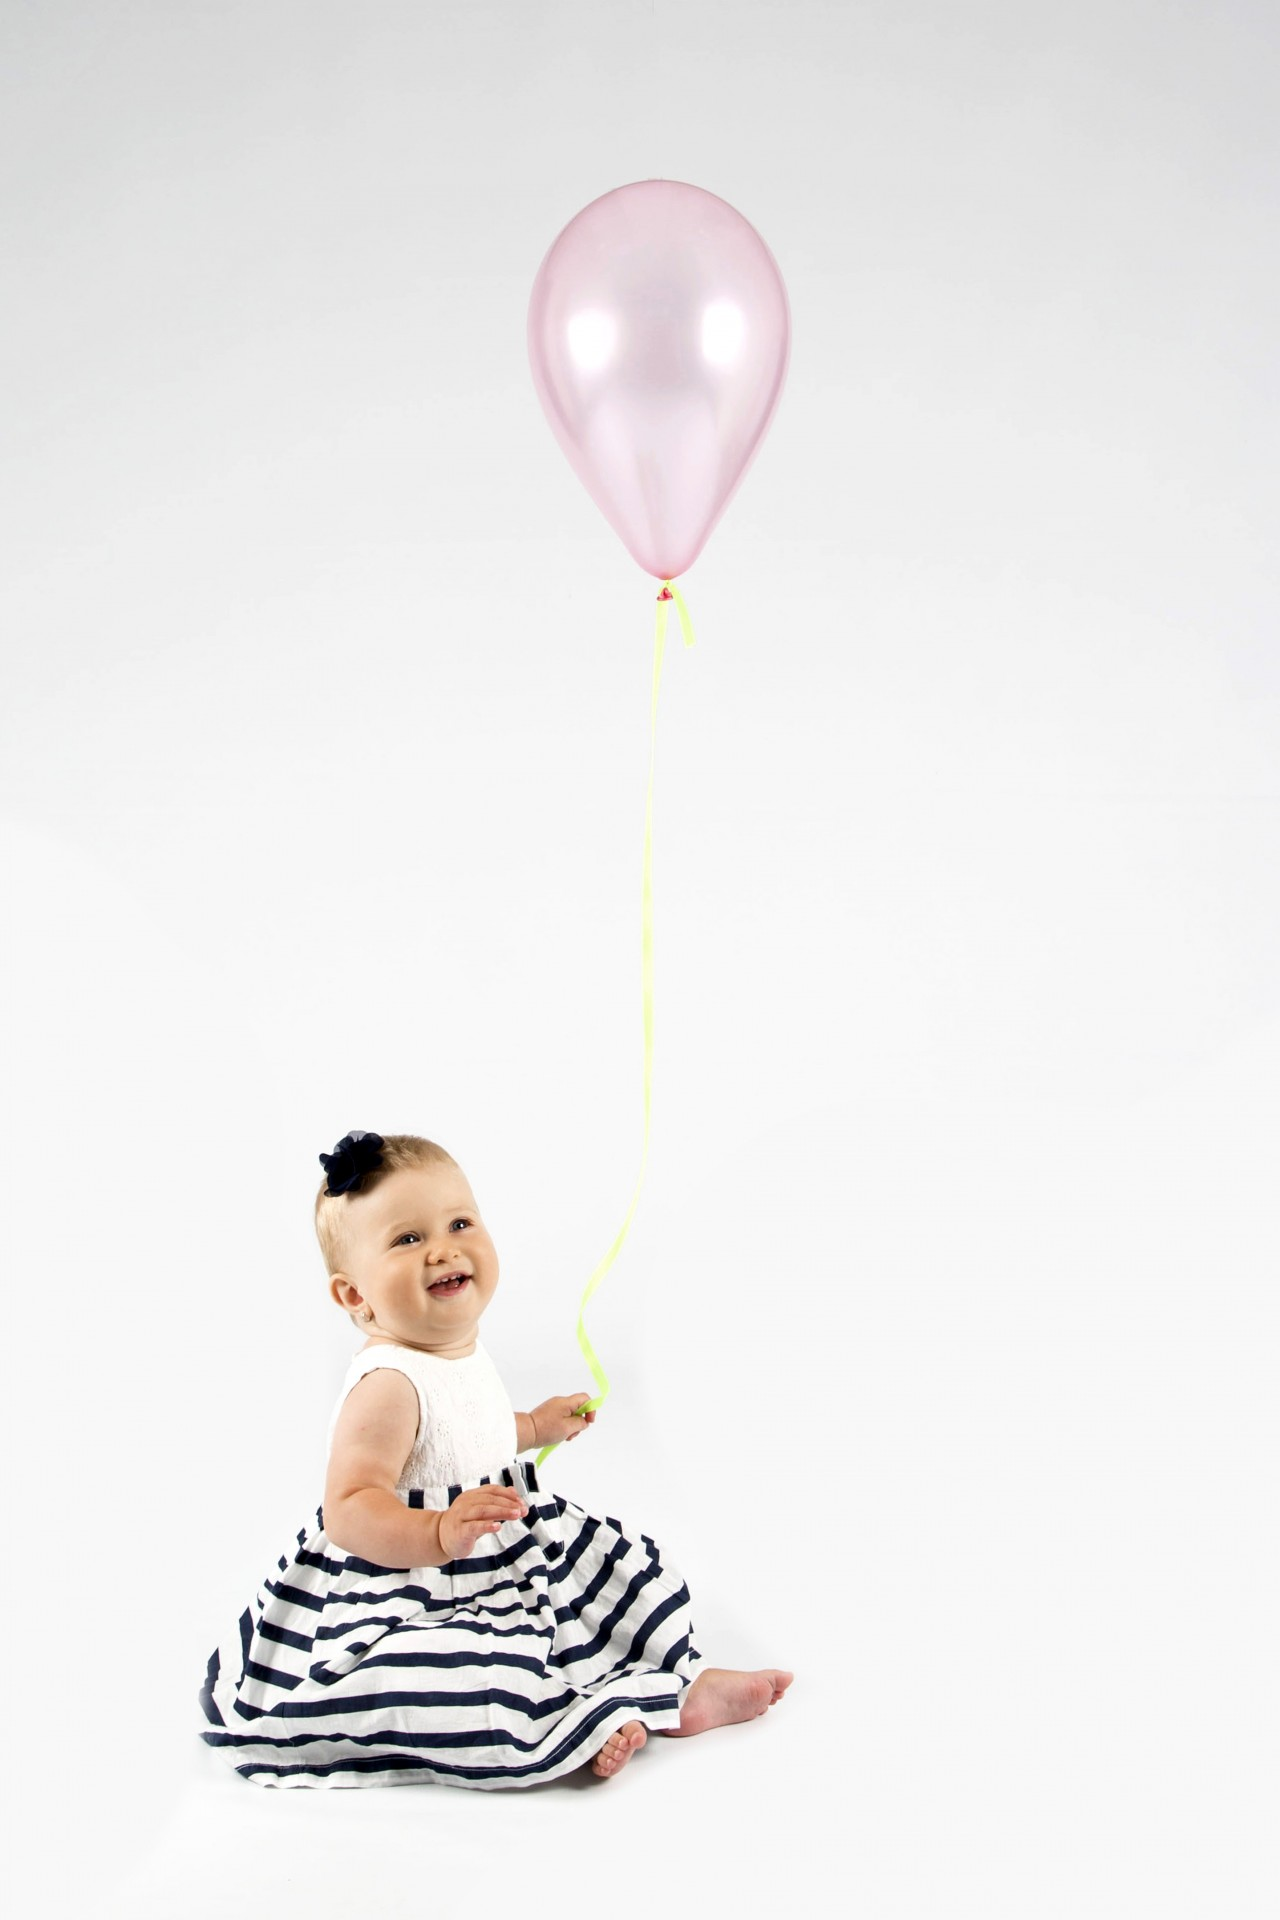 Baby Girl Holding Balloon Free Stock Photo Public Domain